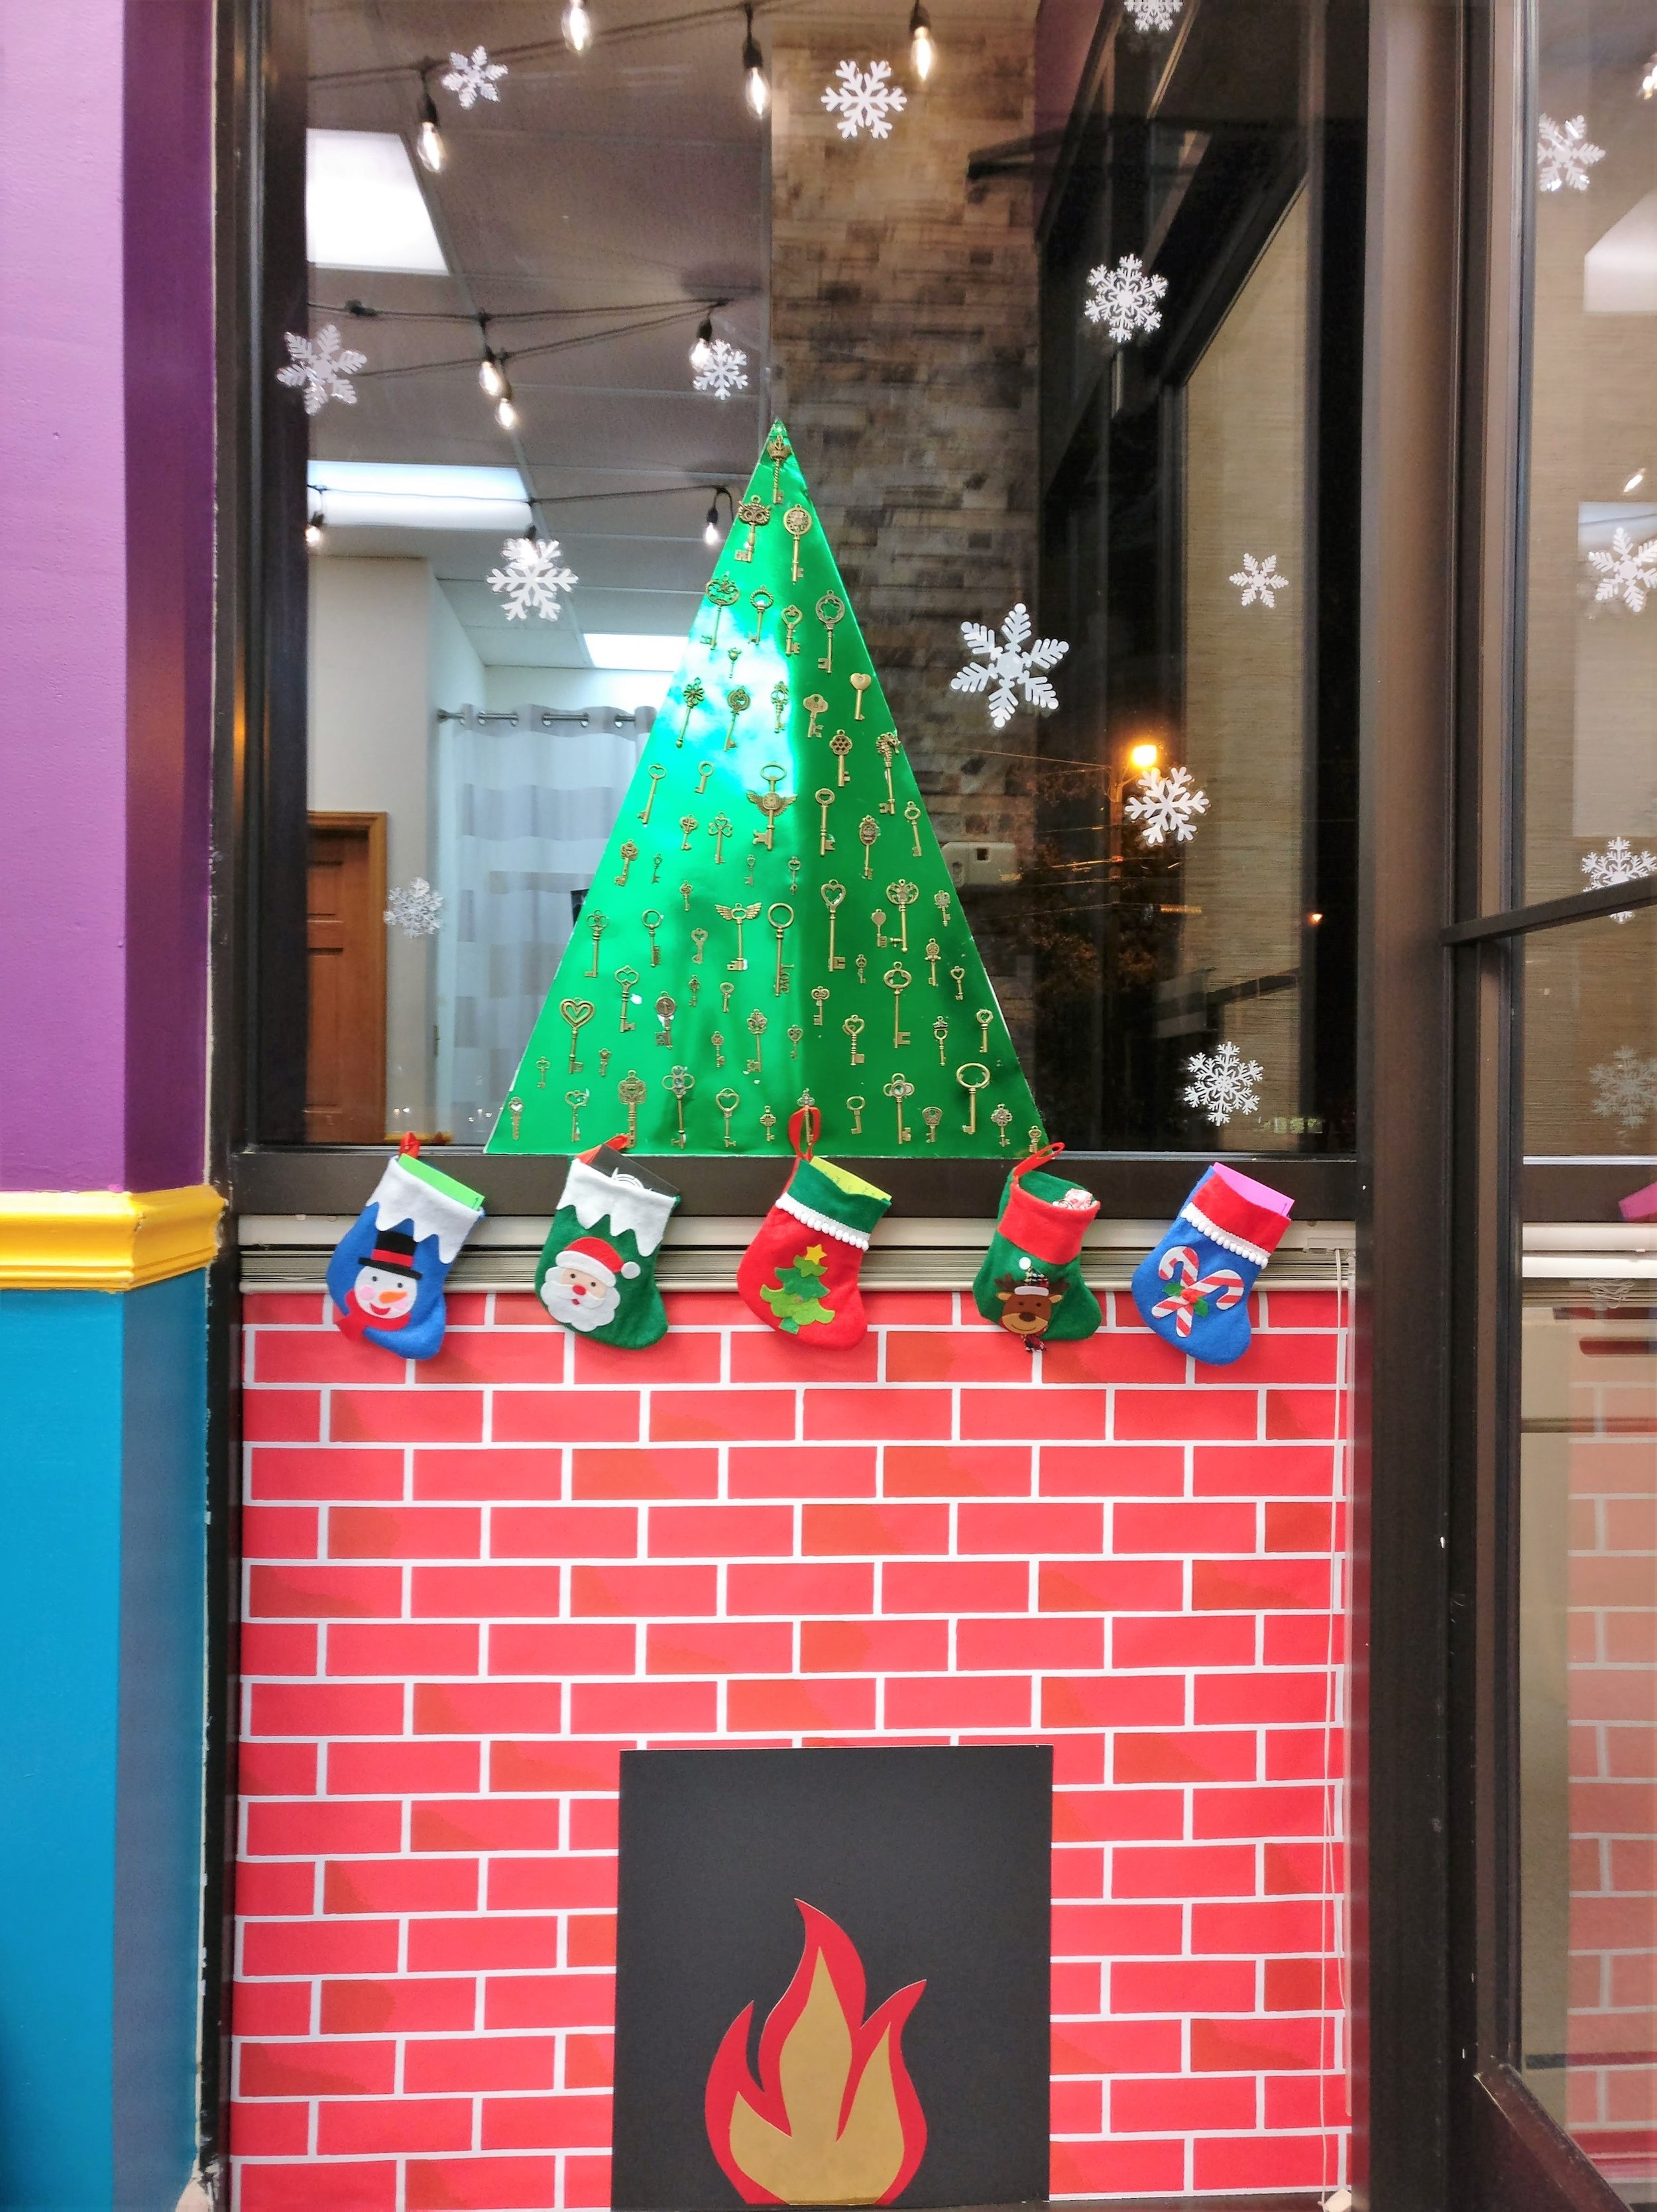 Bull City Escape's window display. The tree is hung with keys and the stockings are filled with riddles, stickers, and candy.